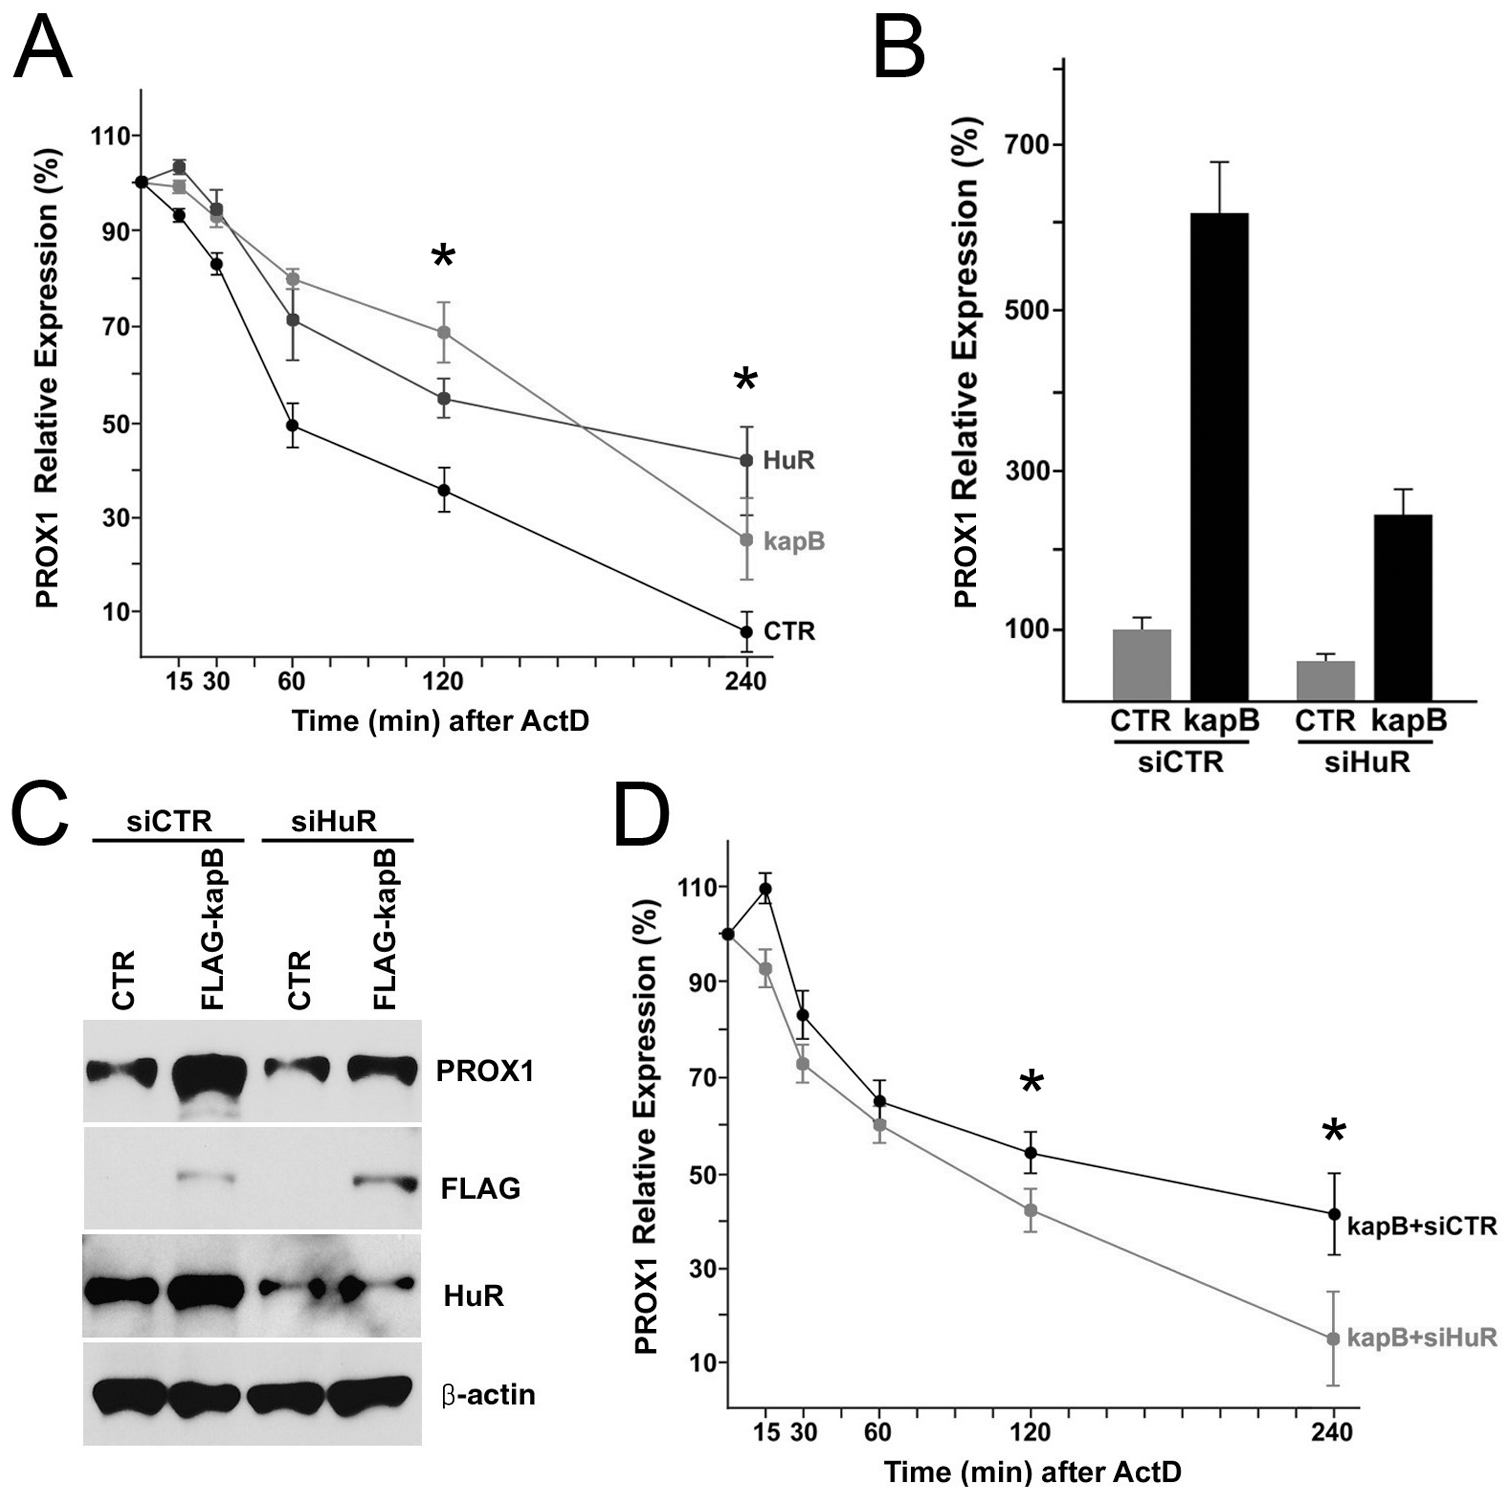 Kaposin-B upregulates PROX1 by promoting its mRNA stability through HuR.